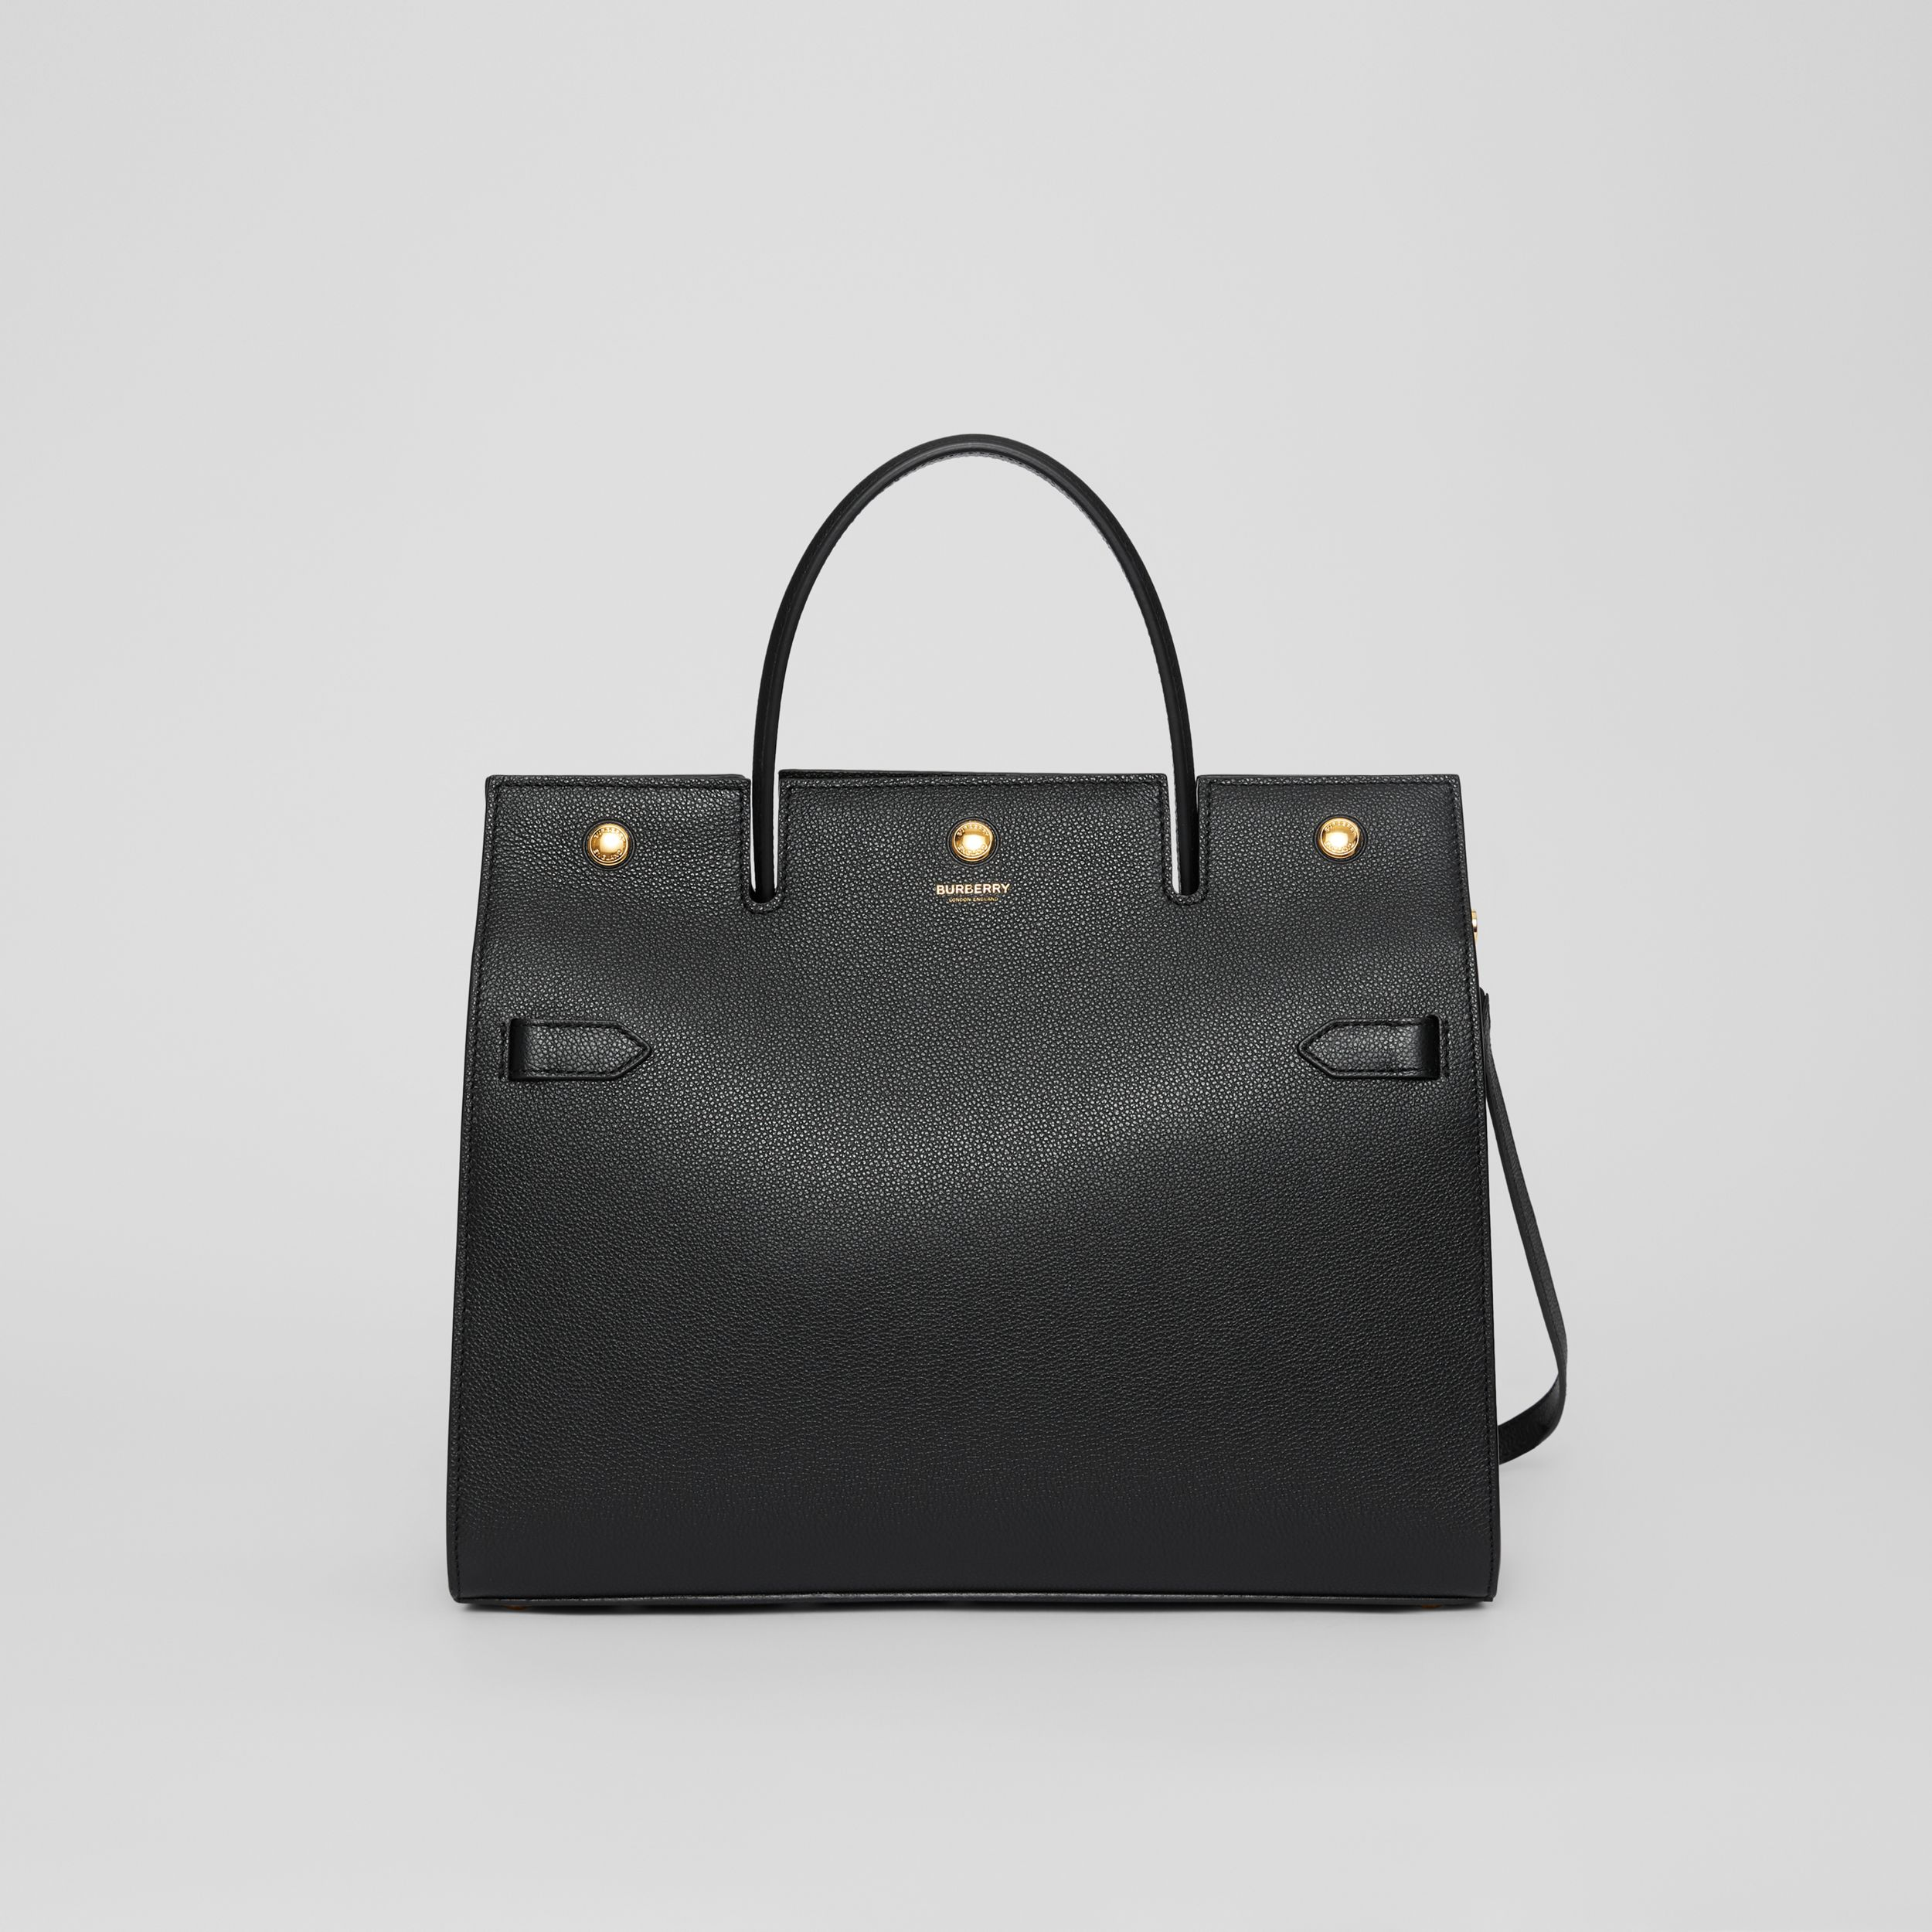 Medium Leather Title Bag in Black - Women | Burberry United Kingdom - 1